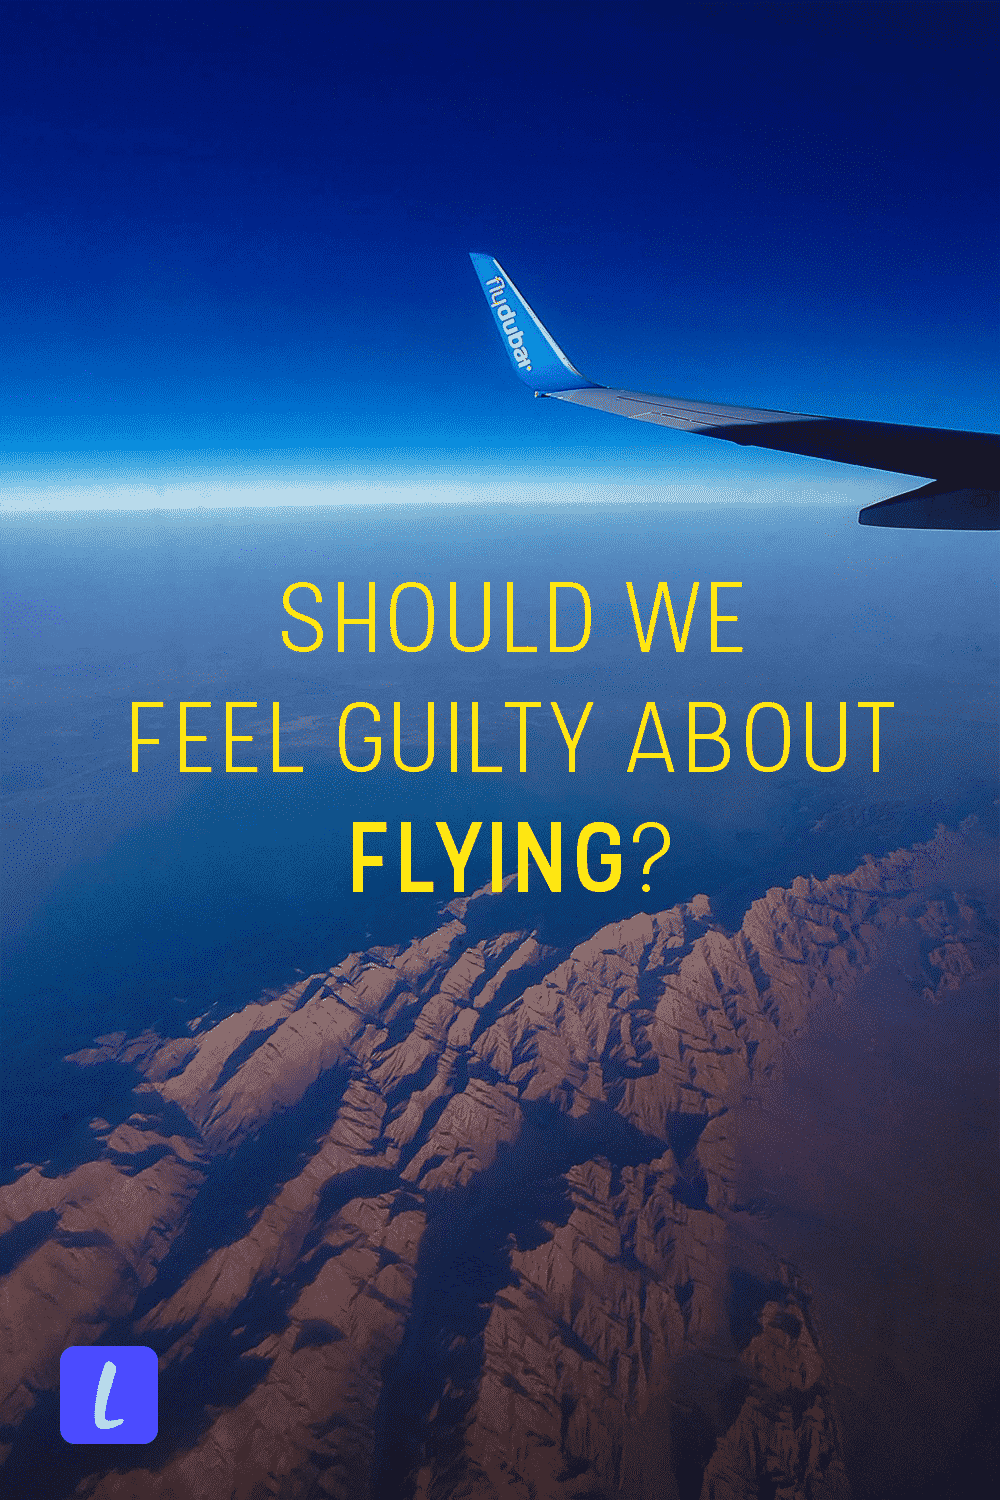 Should we feel guilty about flying? We know plane travel is bad for the environment, but does that mean we should stop flying? Is it ethical for responsible travelers to fly? Here's what travelers need to know about the environmental impact of flying... and who is most responsible.